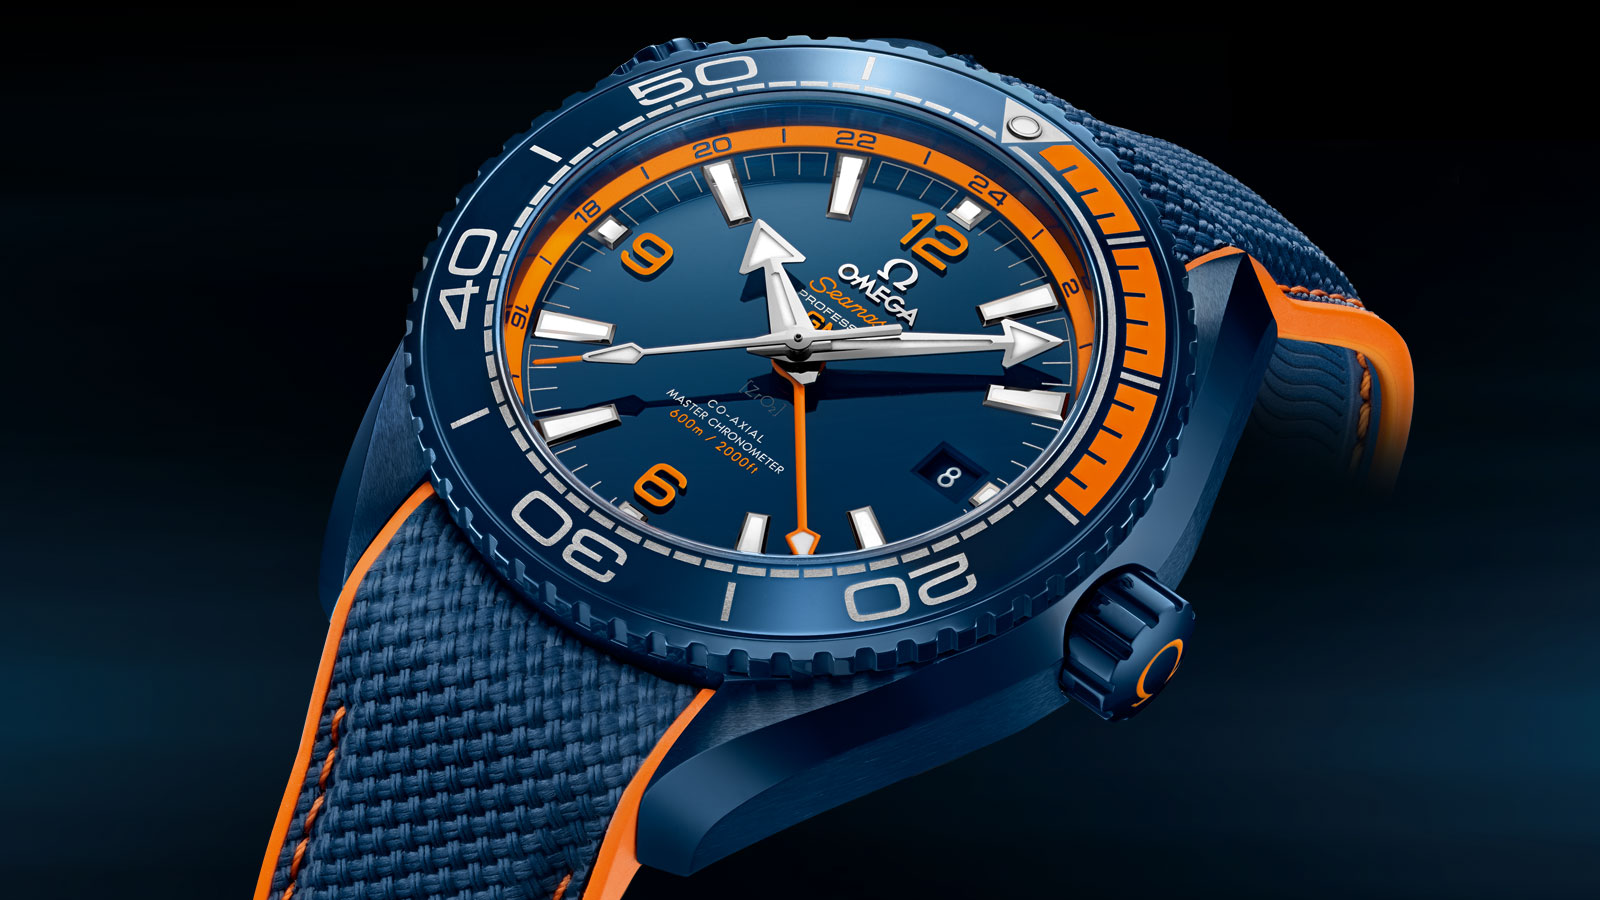 Omega-Seamaster-planet-ocean-big-blue-2.jpg